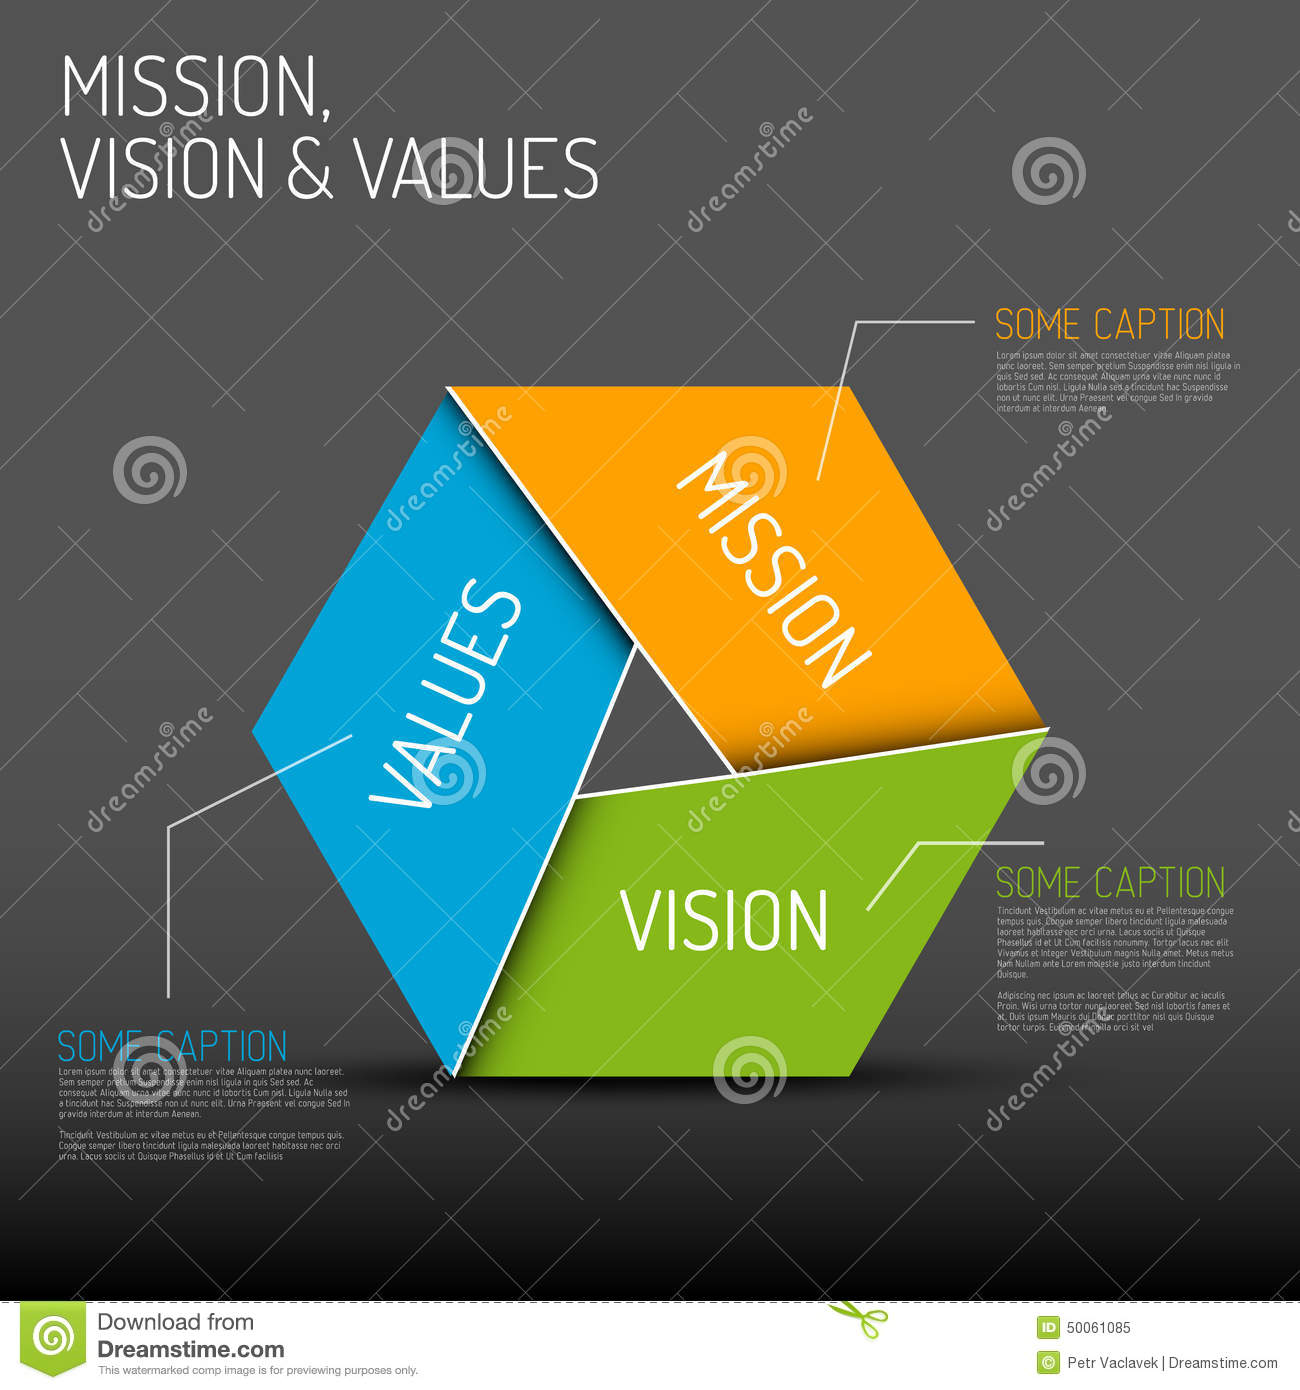 red cross mission vision values goals This allows us fulfil our humanitarian mission at home and abroad  goals and  objectives, and to uphold the values and principles of the red cross movement.